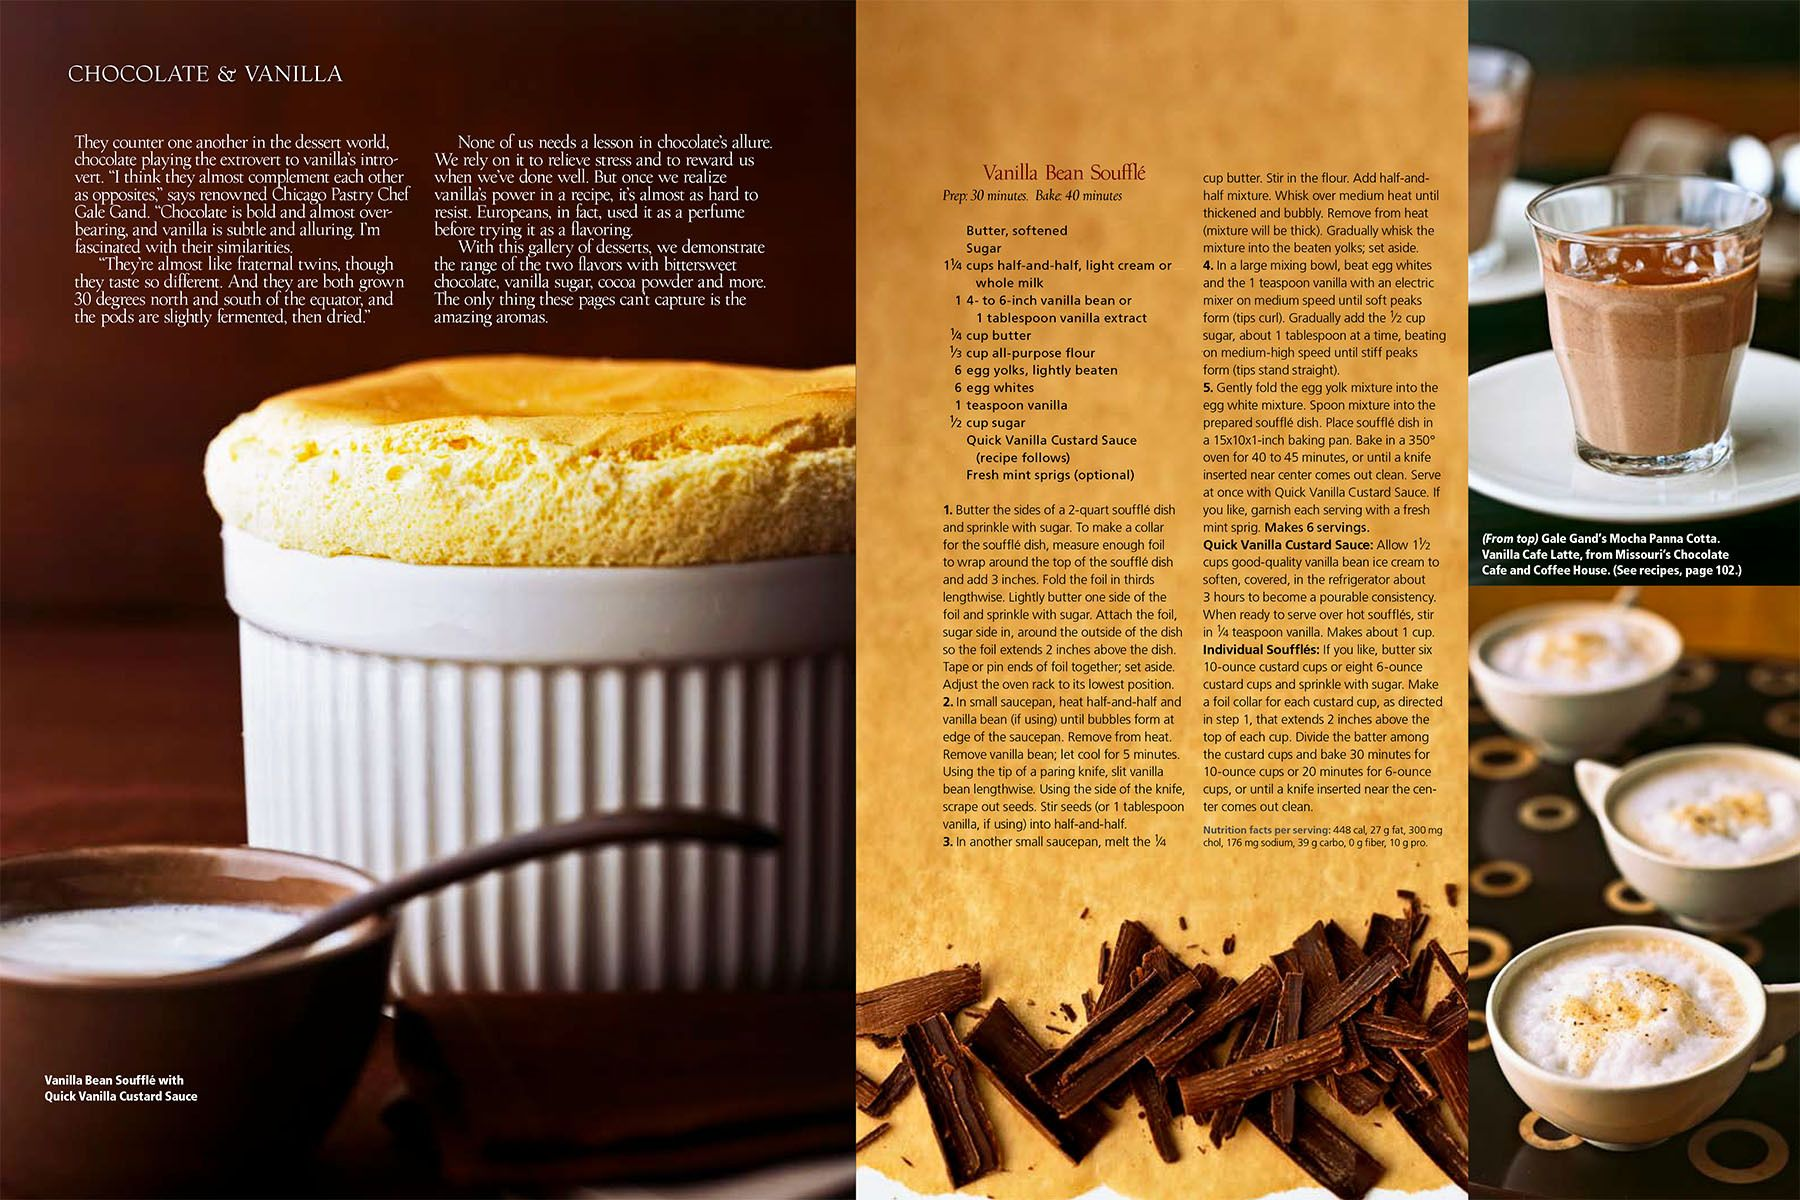 Vanilla souffle, chocolate mousse, hot chocolate cups for  Chocolate & Vanilla story for Midwest Living Magazinewww.rkjacobs.comTop Food Photographer New York Seattle PortlandRobert Jacobs Photography ©2013